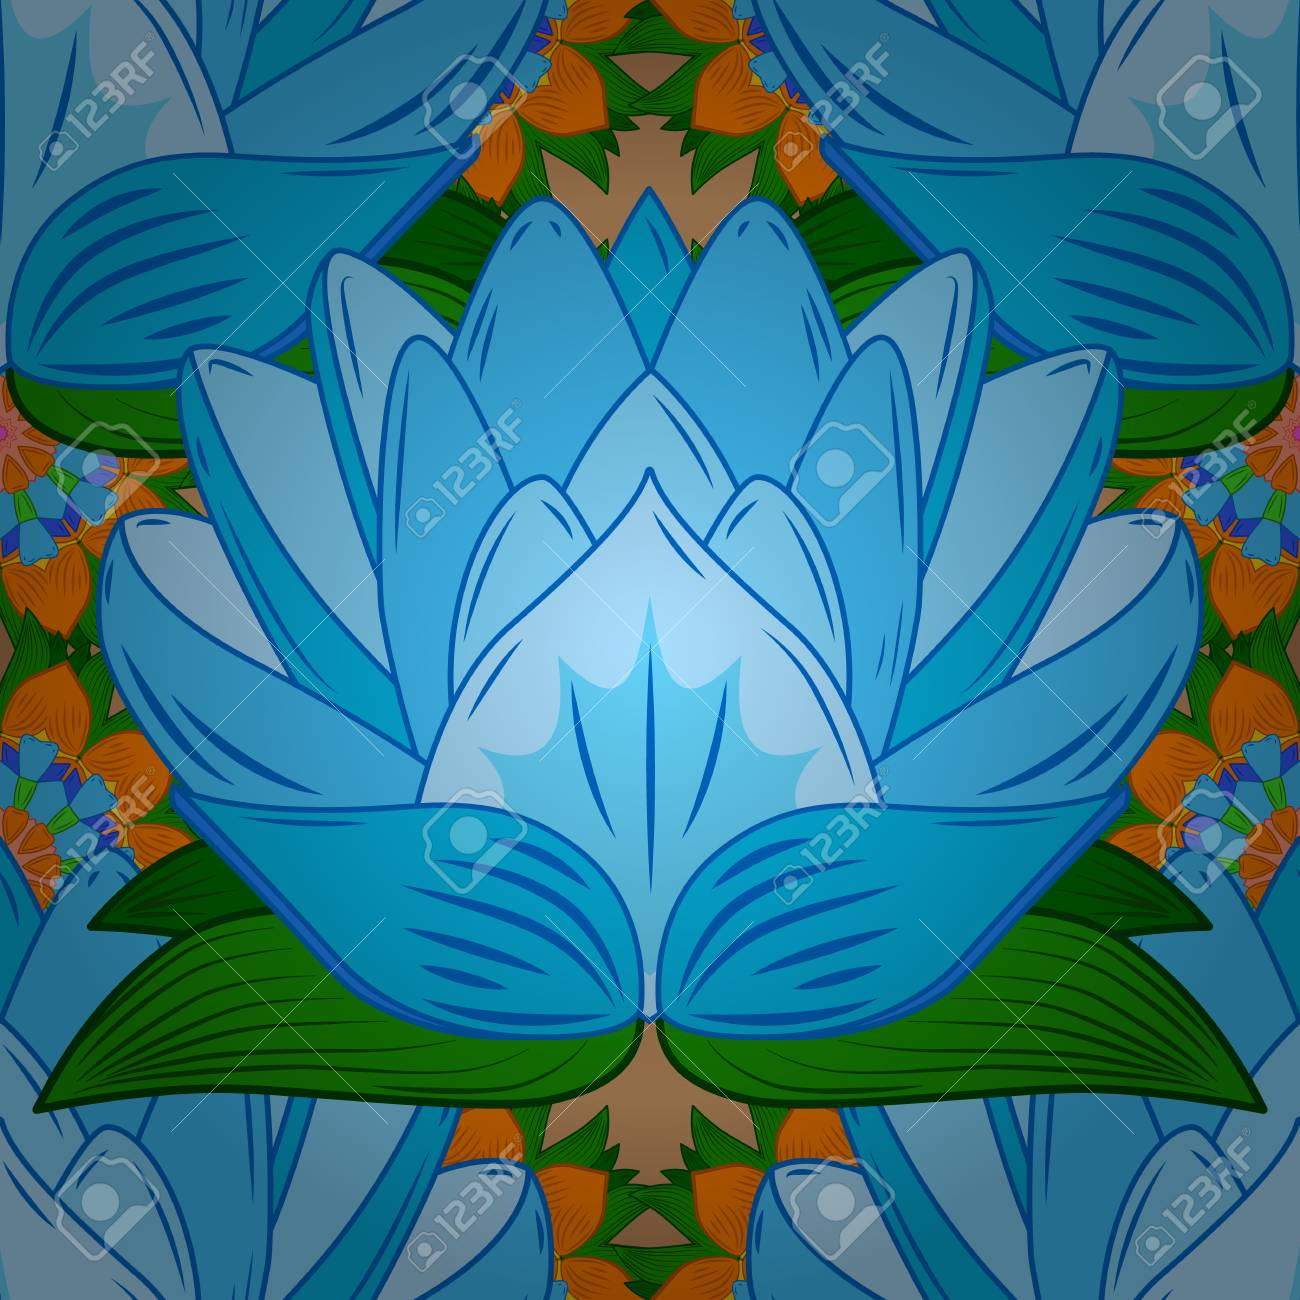 Raster seamless continuous sketch tile lotus flower design created raster seamless continuous sketch tile lotus flower design created in blue tones radial gradient mightylinksfo